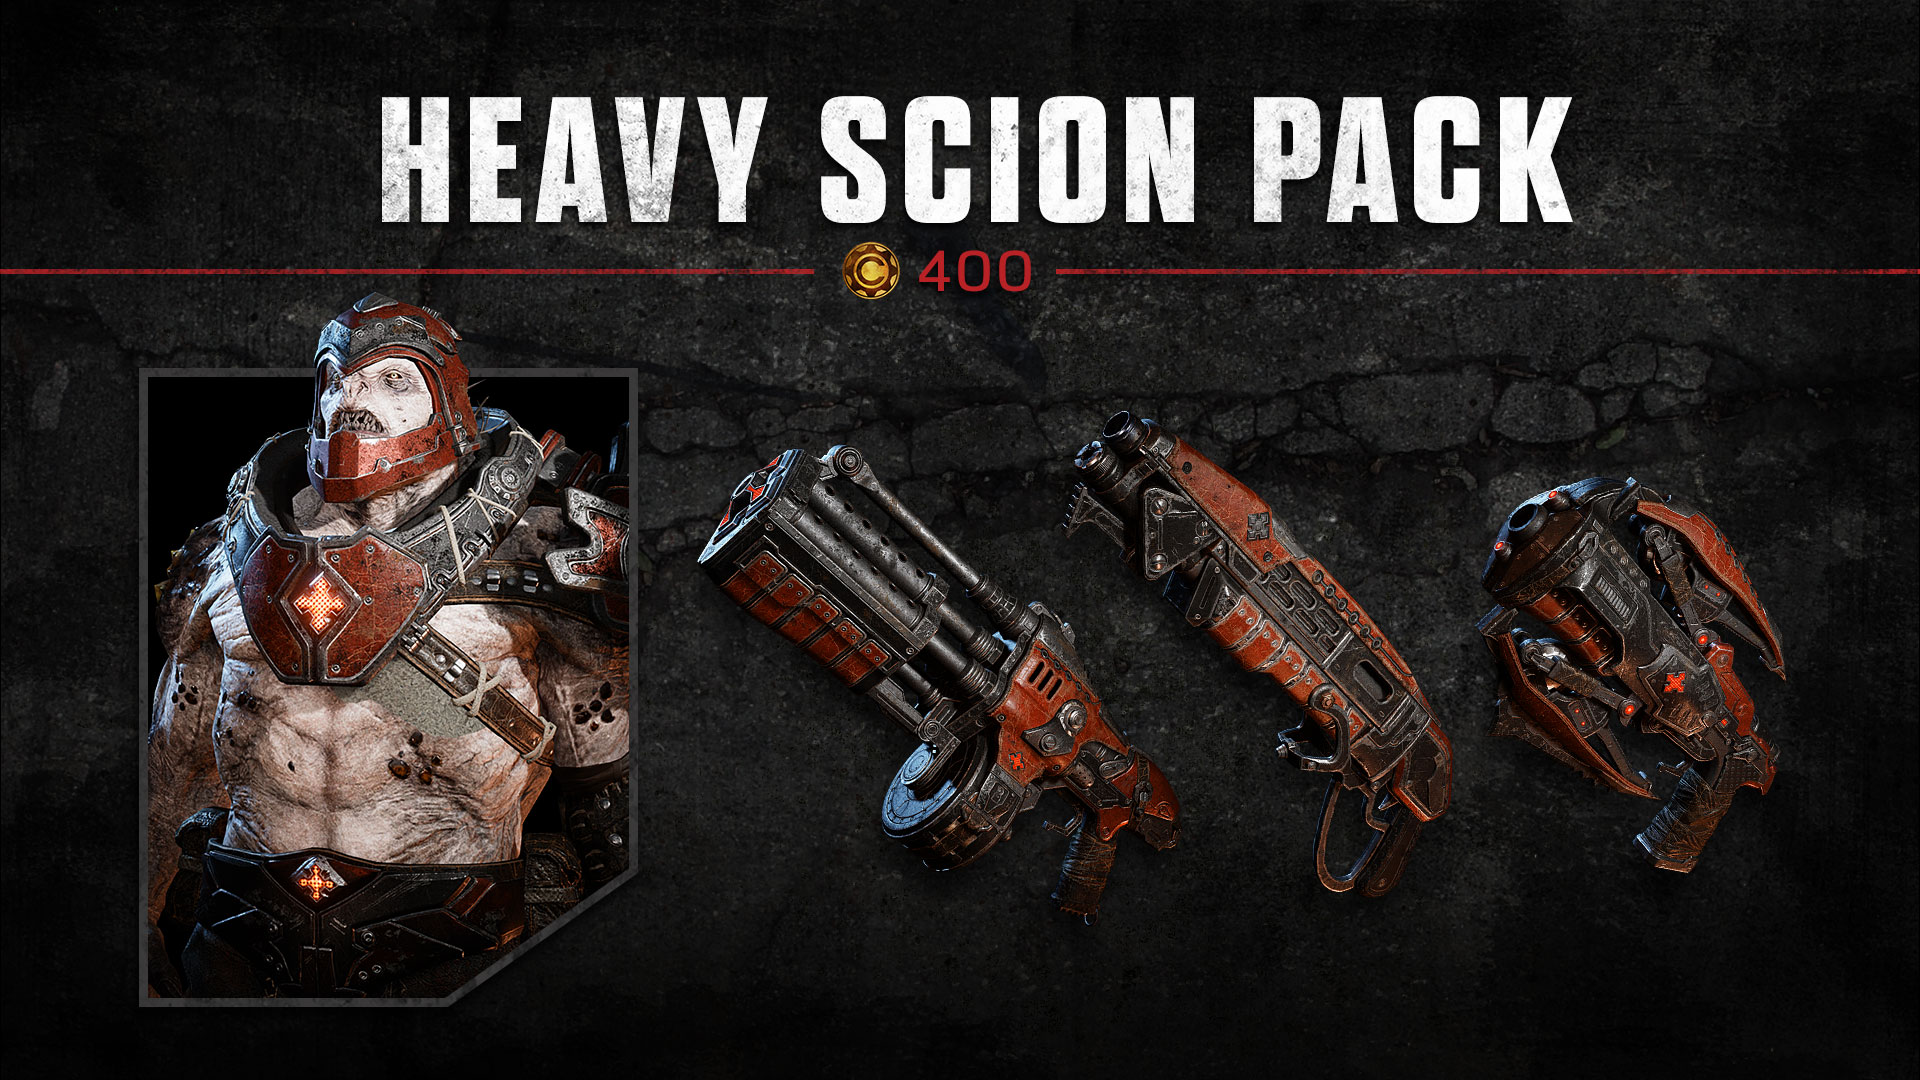 heavy_scion_pack_1920x1080-8925f415c0464